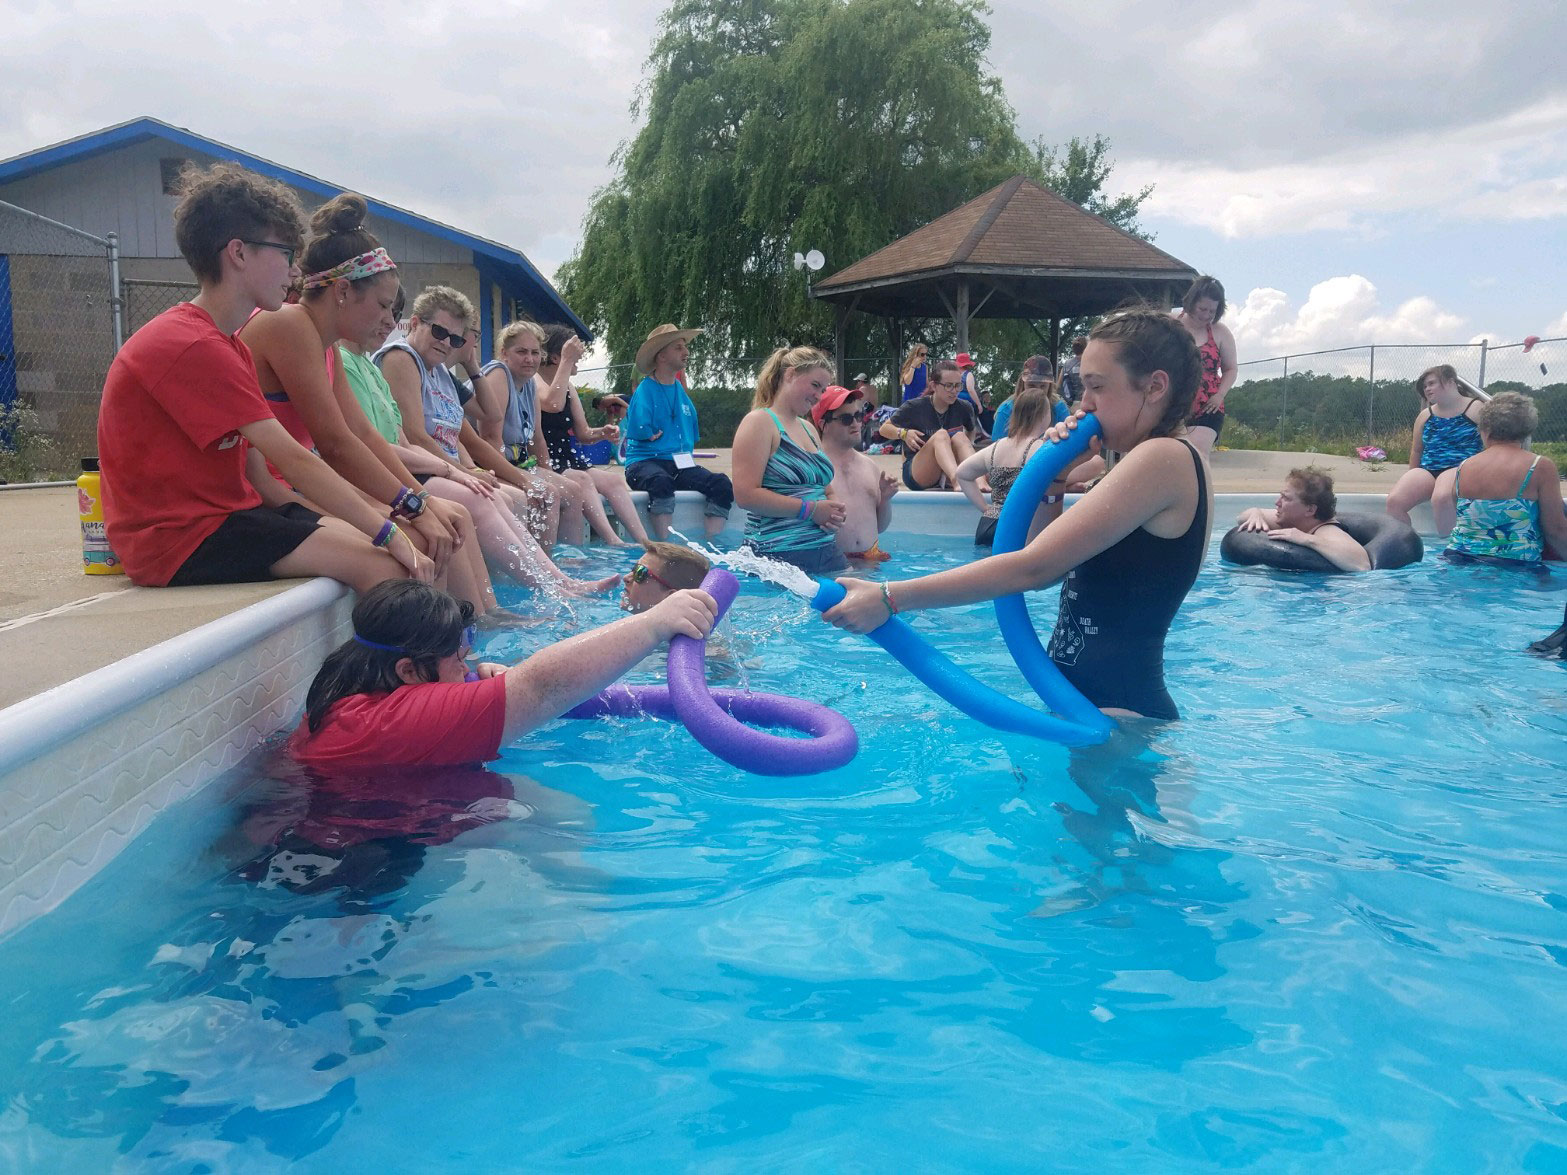 Special-Needs-Camp-HS-Mission-Trip-2019-6_PlainfieldChristianChurch_Indiana.jpg